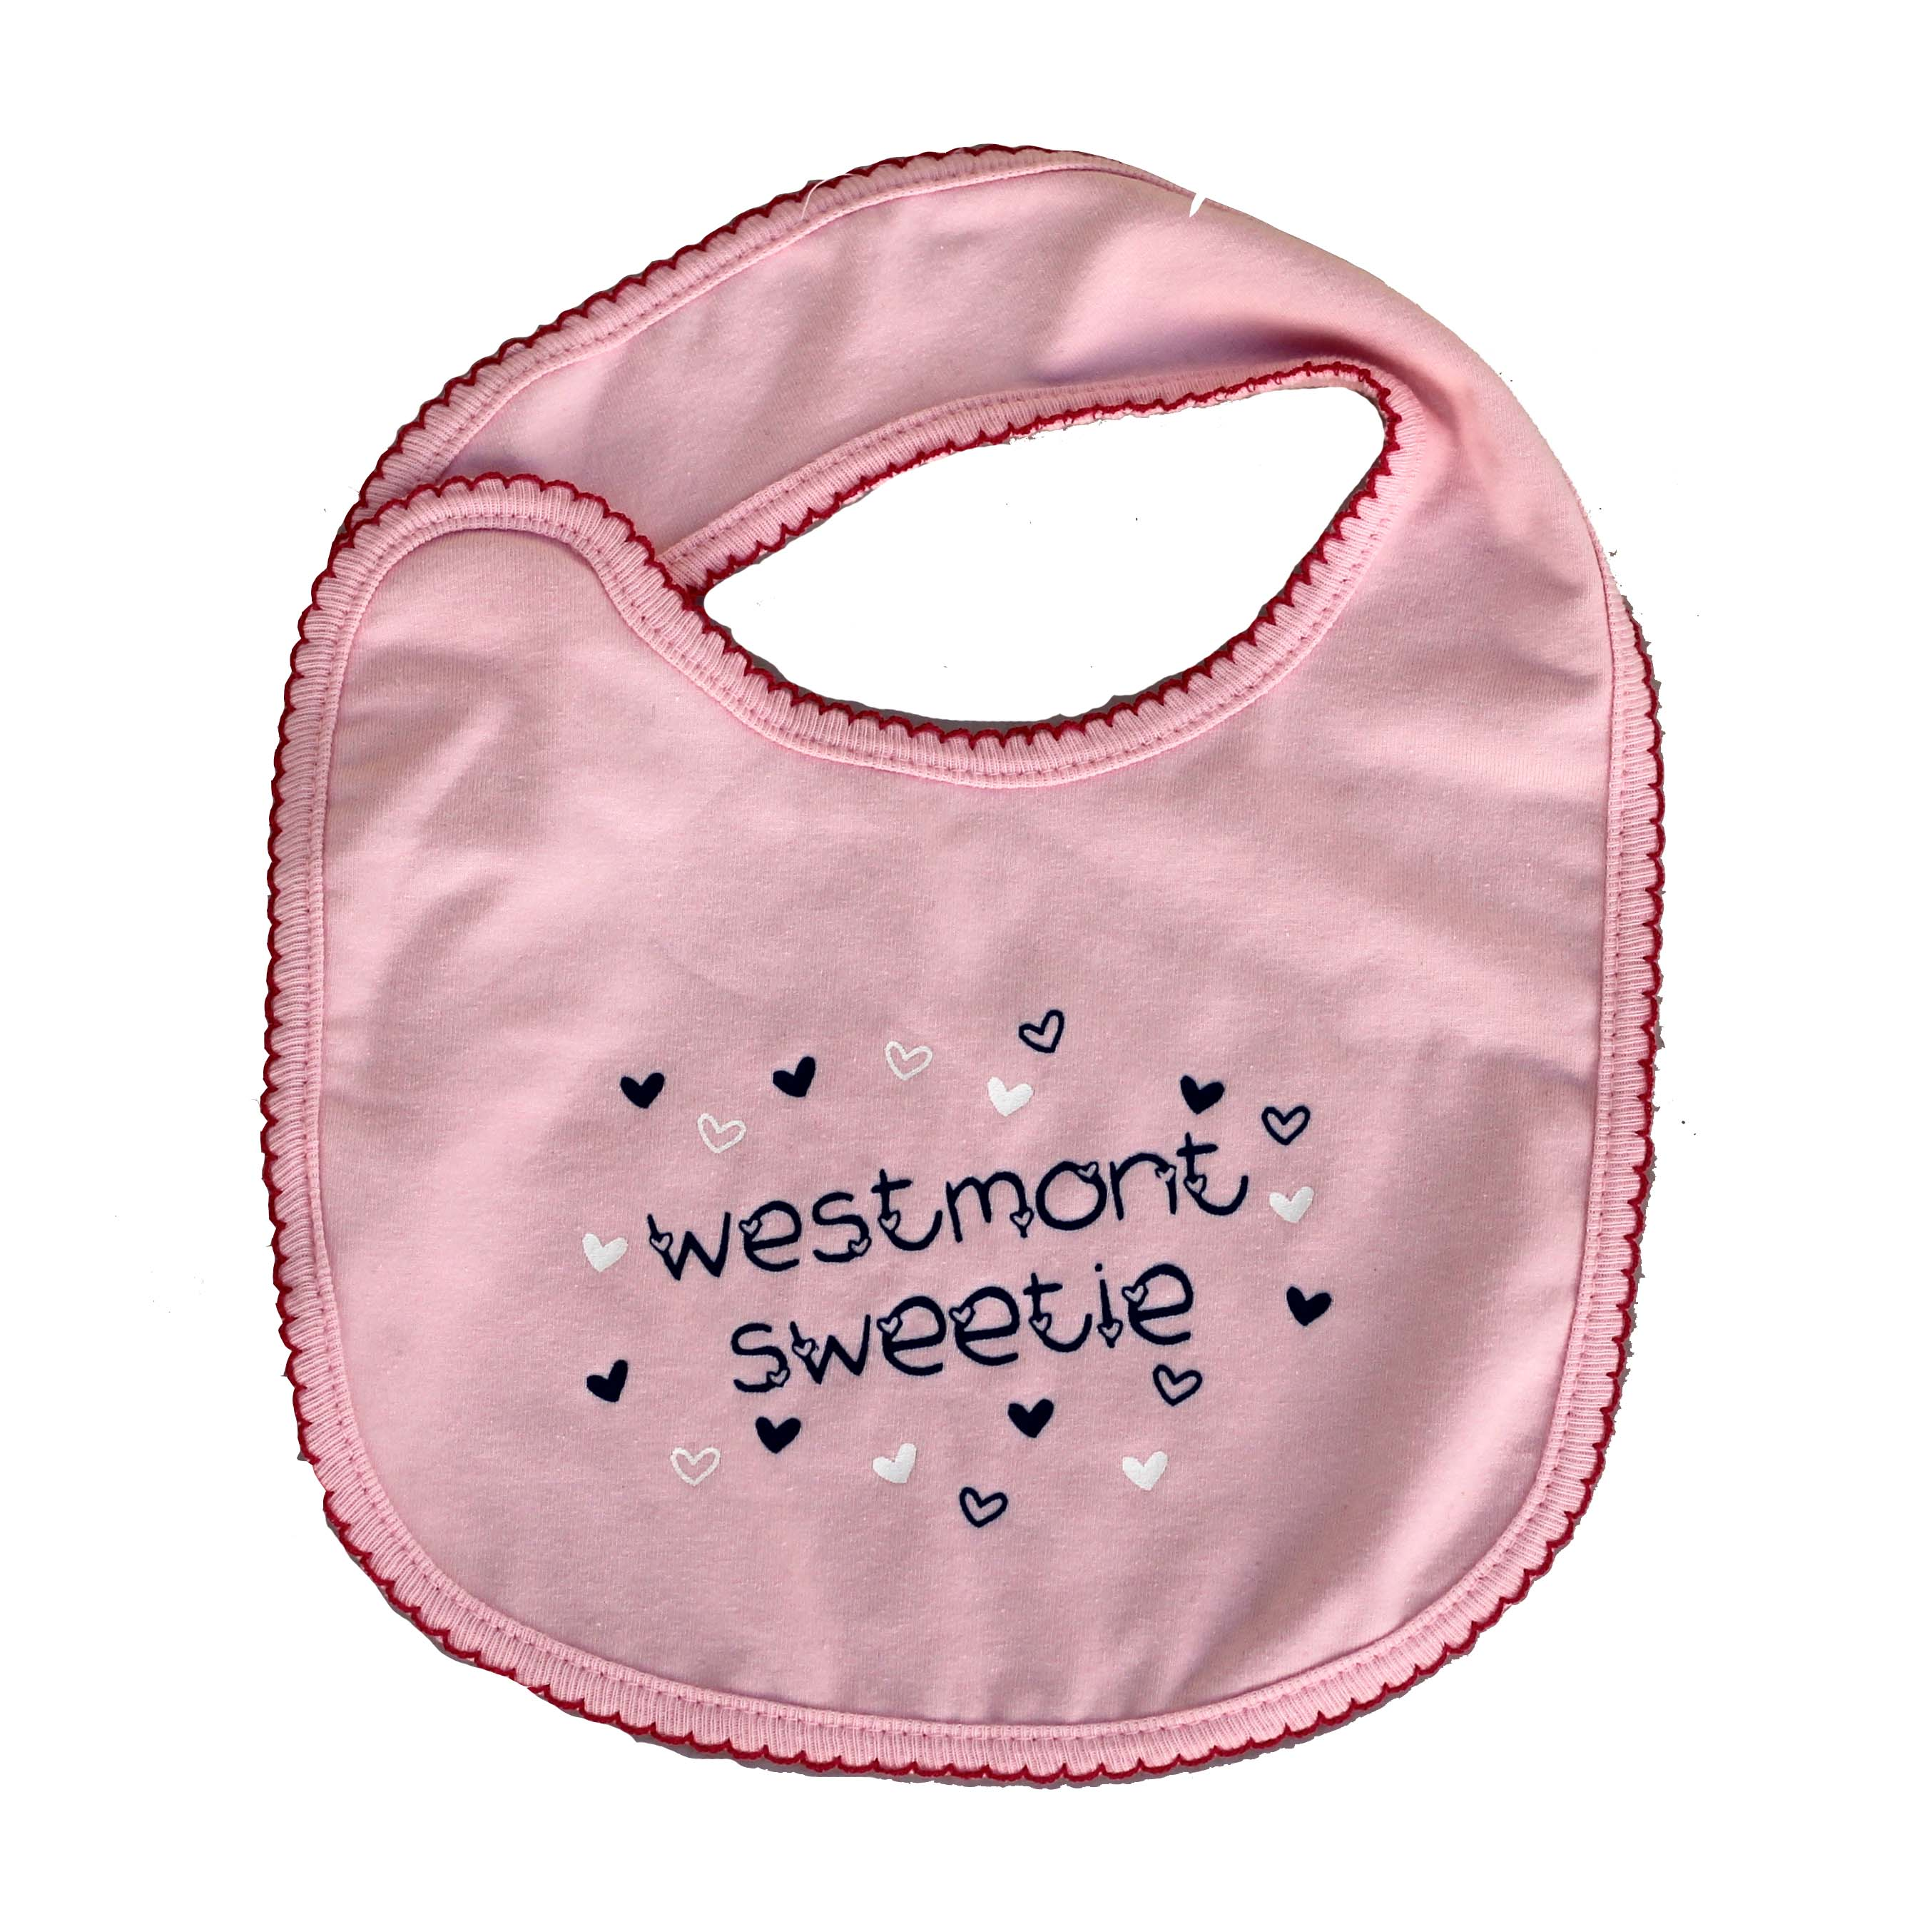 Image for the Third Street Westmont Sweetie Bib product